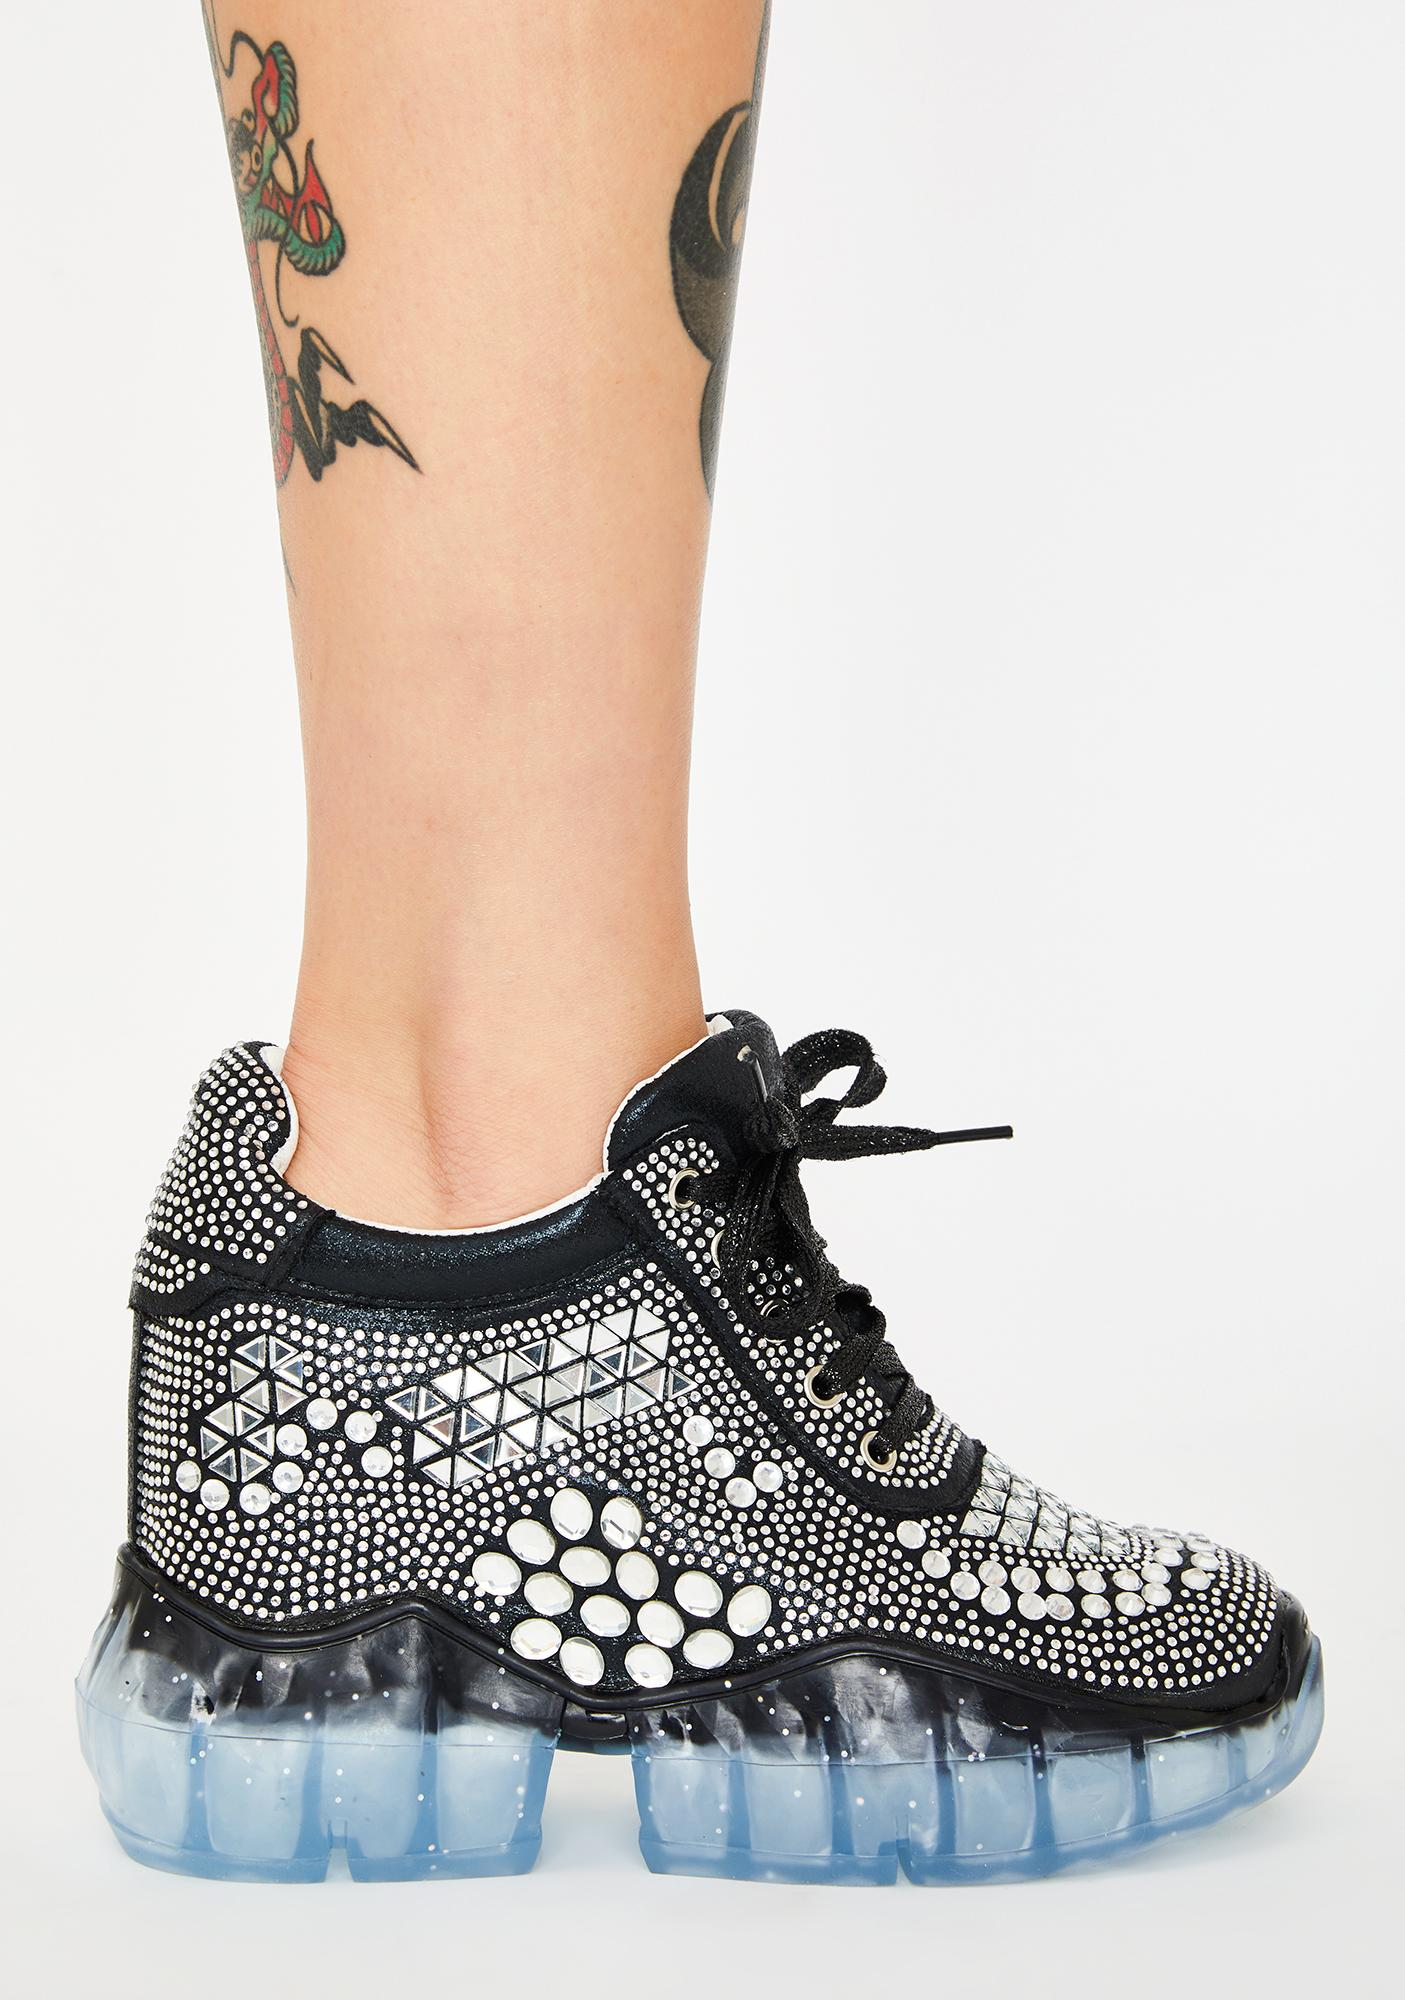 Anthony Wang Shoot To Thrill Platform Sneakers